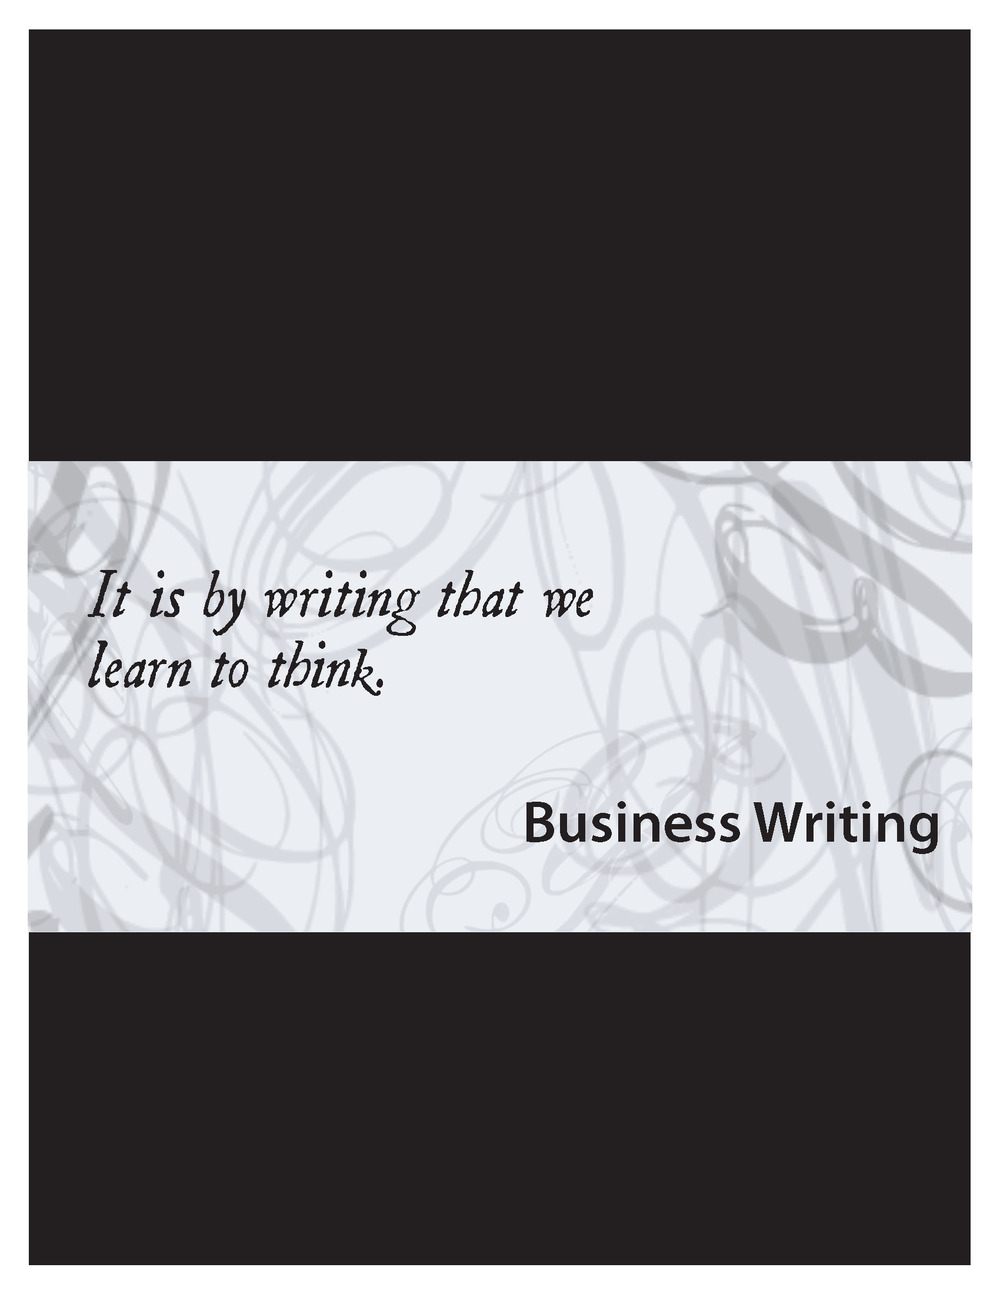 business_writing_Page_01.jpg